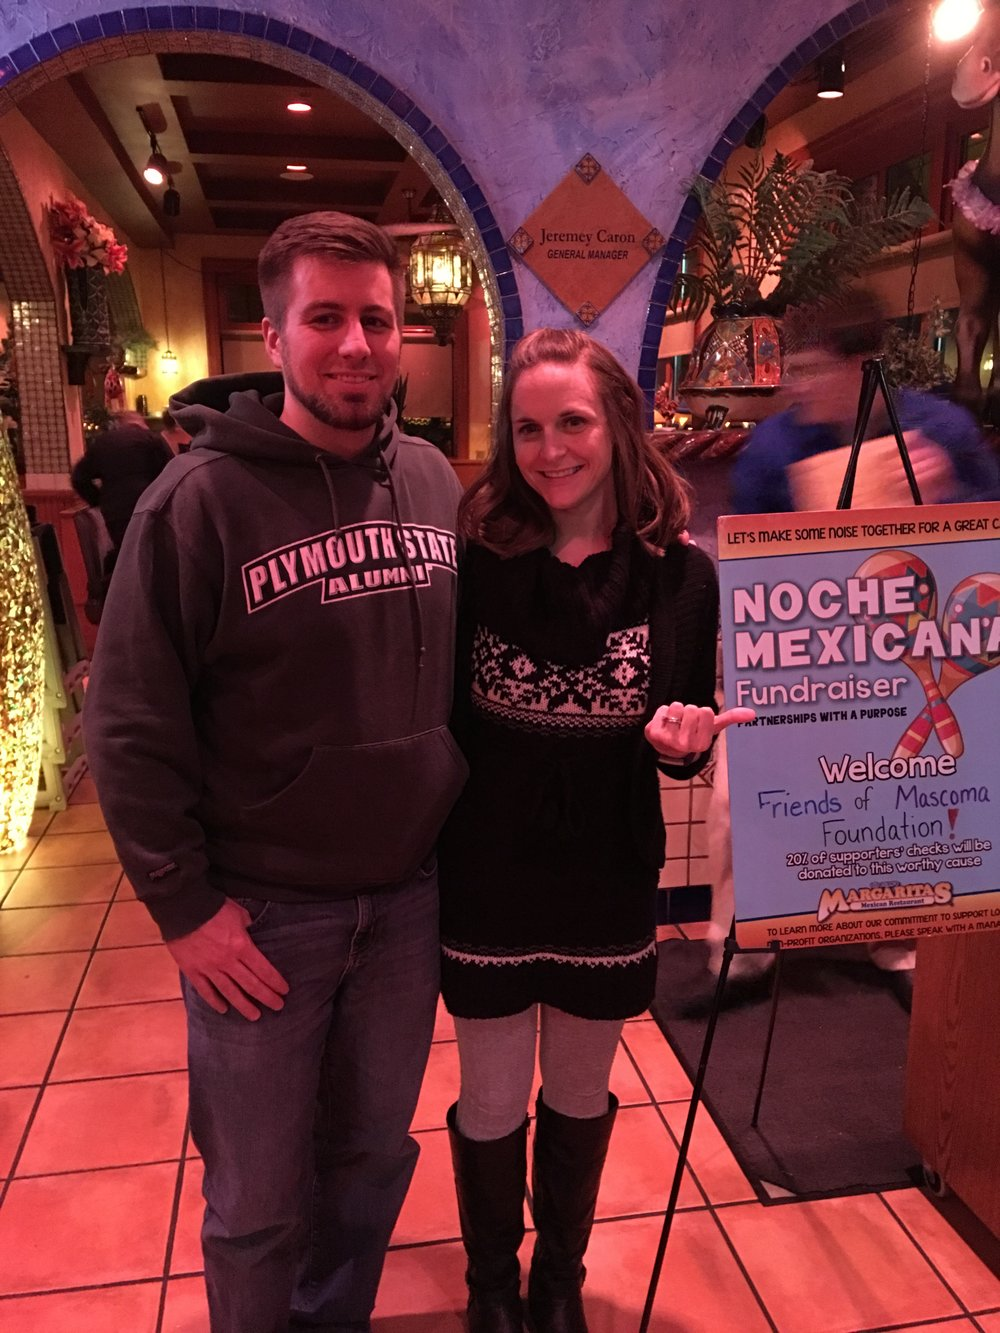 Doug and Shay Plumley have a date night while also supporting us by having dinner at Margarita's Lebanon which donates 20% of their proceeds to the charity. $700.00 was a welcome donation!  Thanks to all who came out!